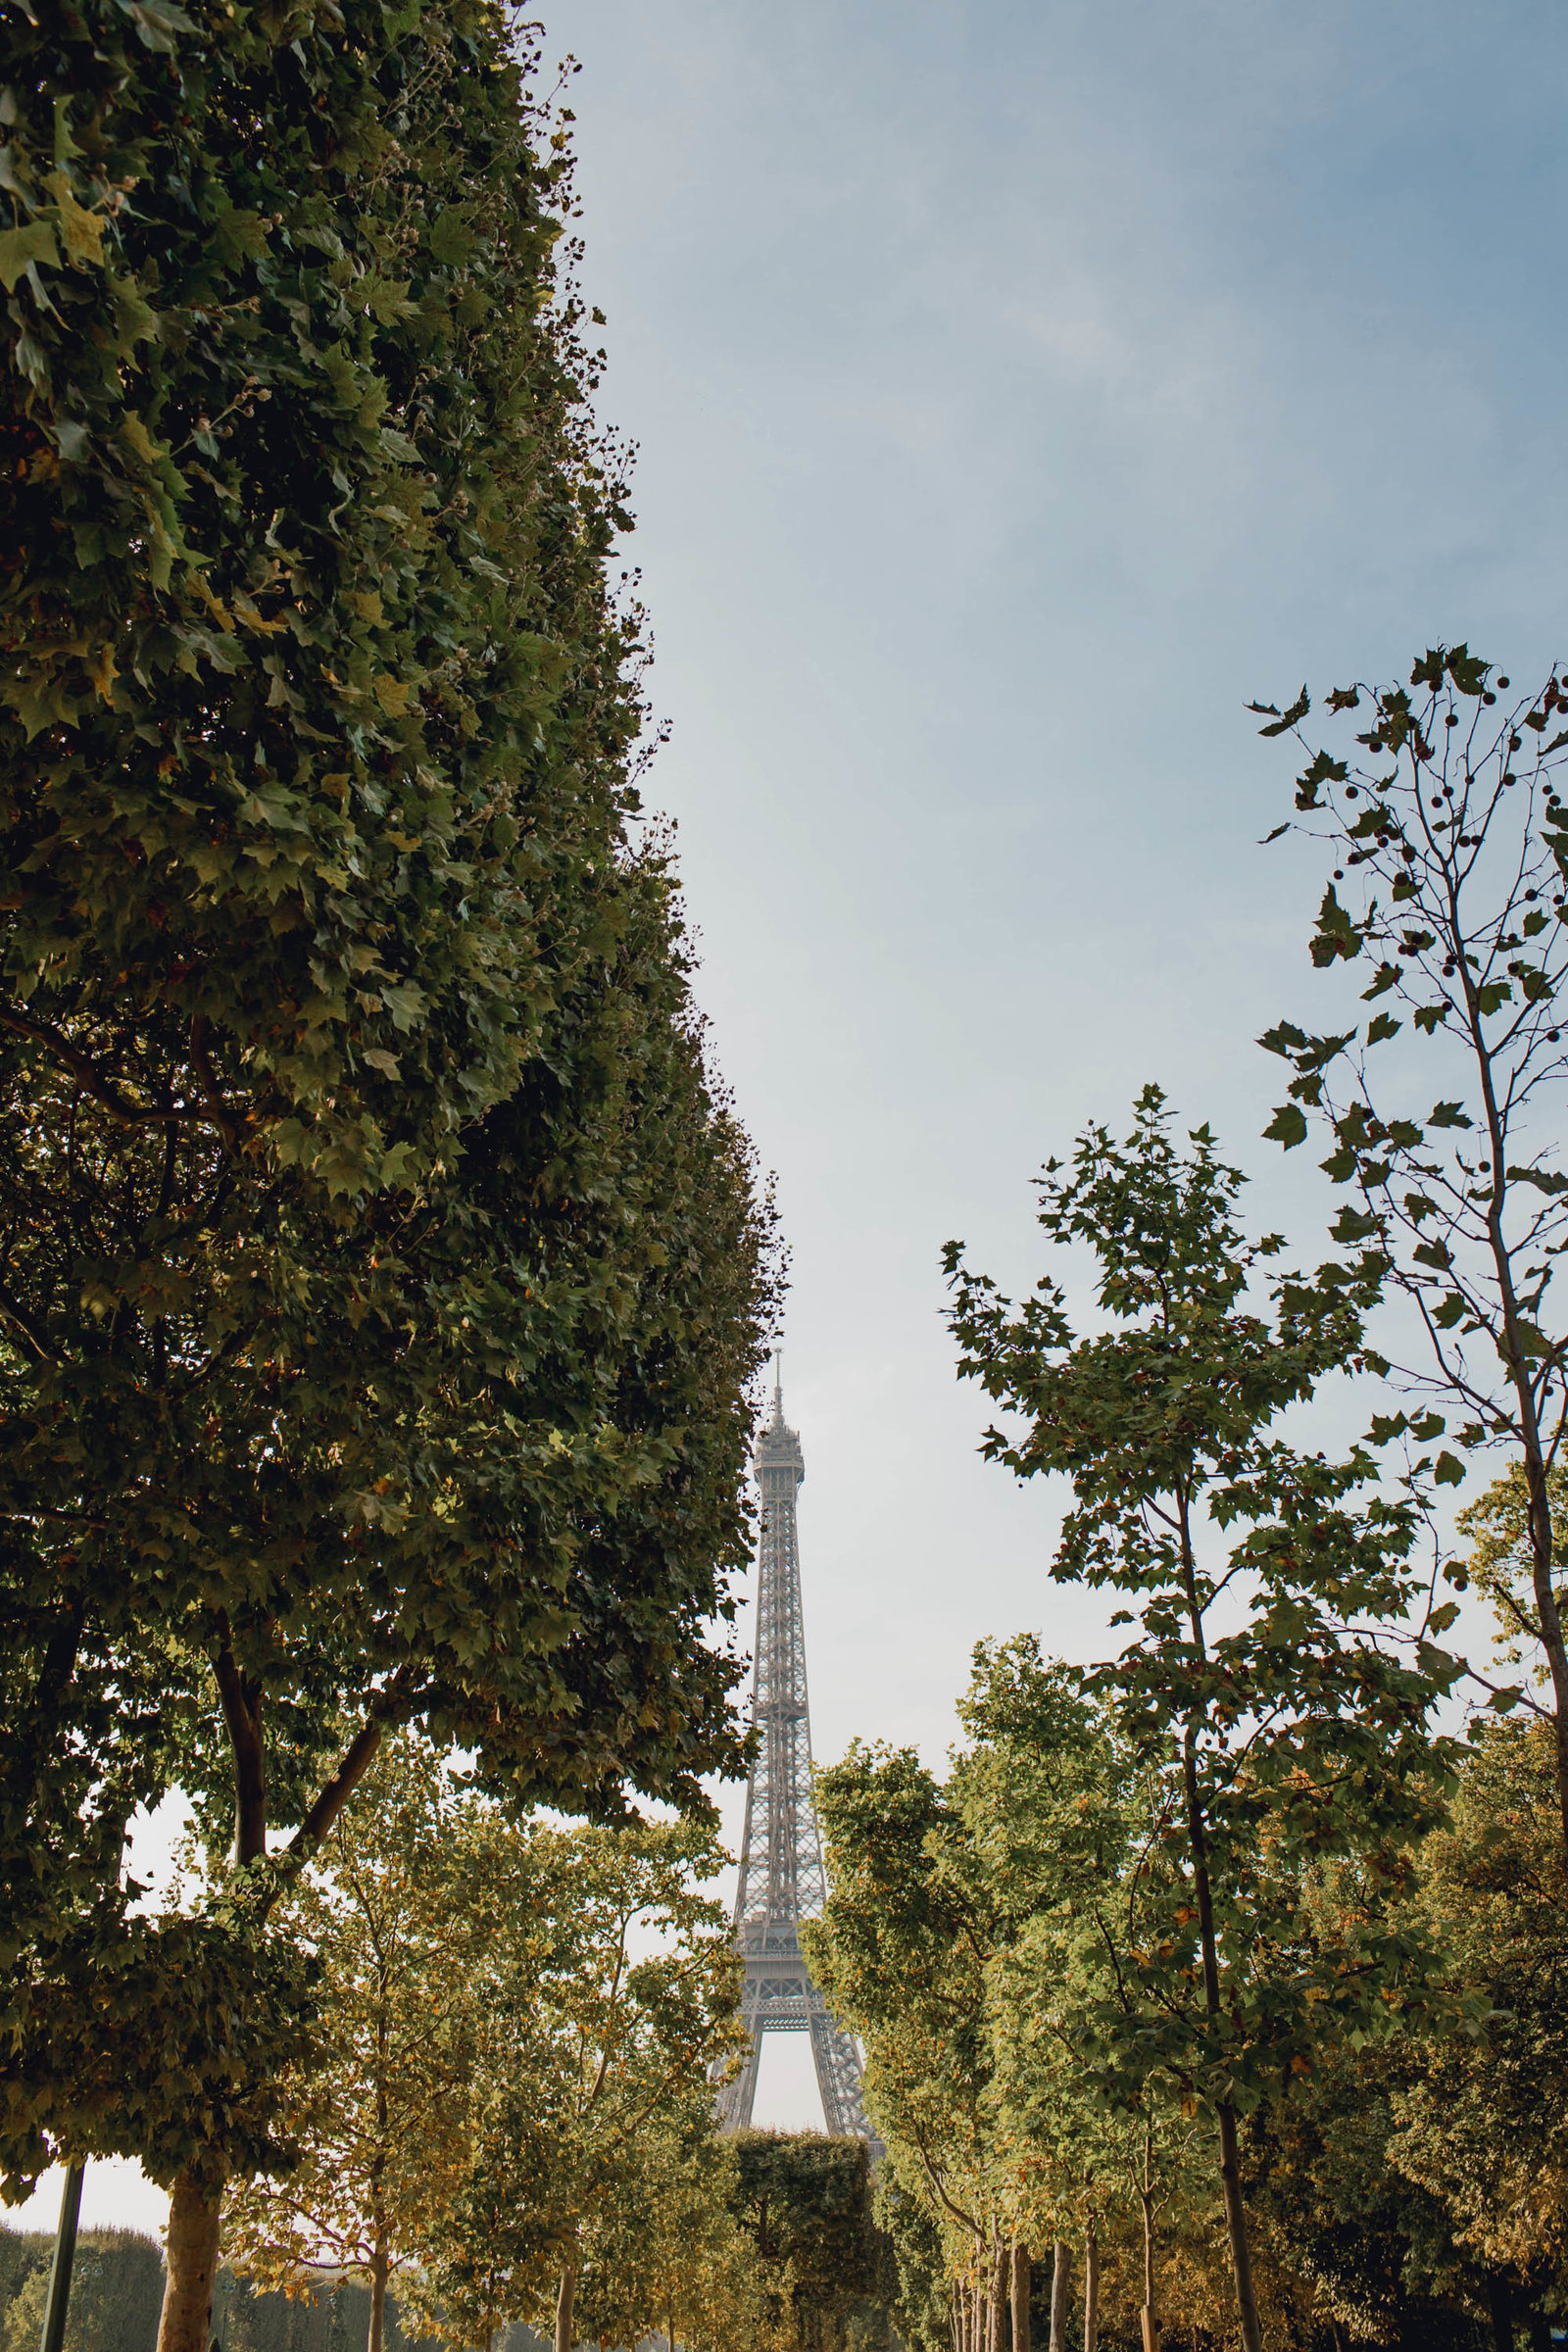 eiffel-tower-paris-france-travel-destination-wedding-kate-timbers-photography-1742